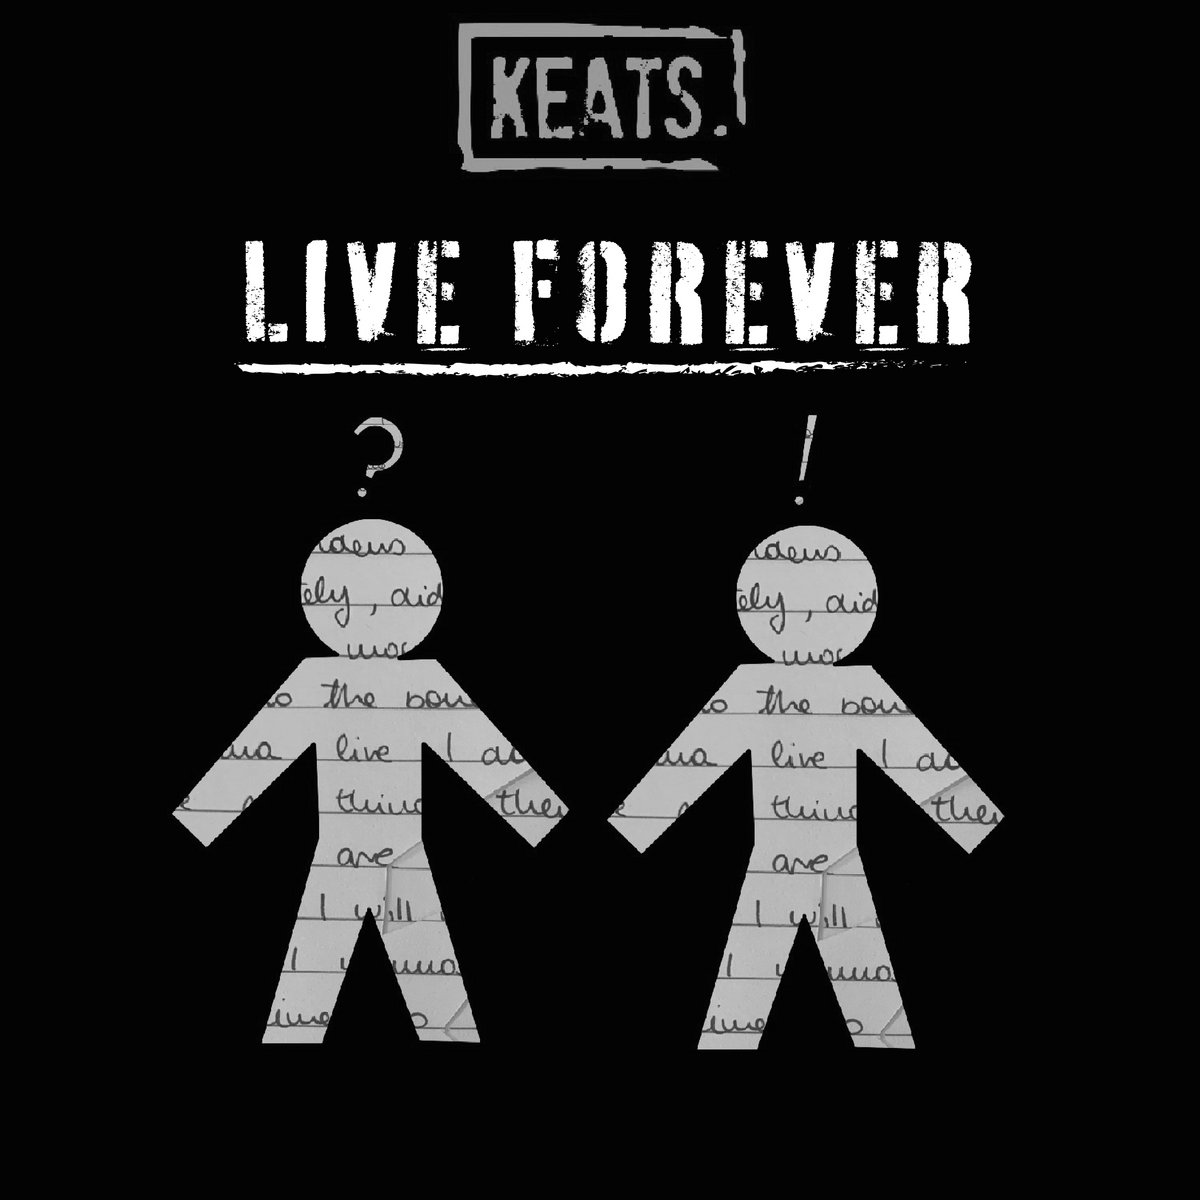 LIVE FOREVER by KEATS.